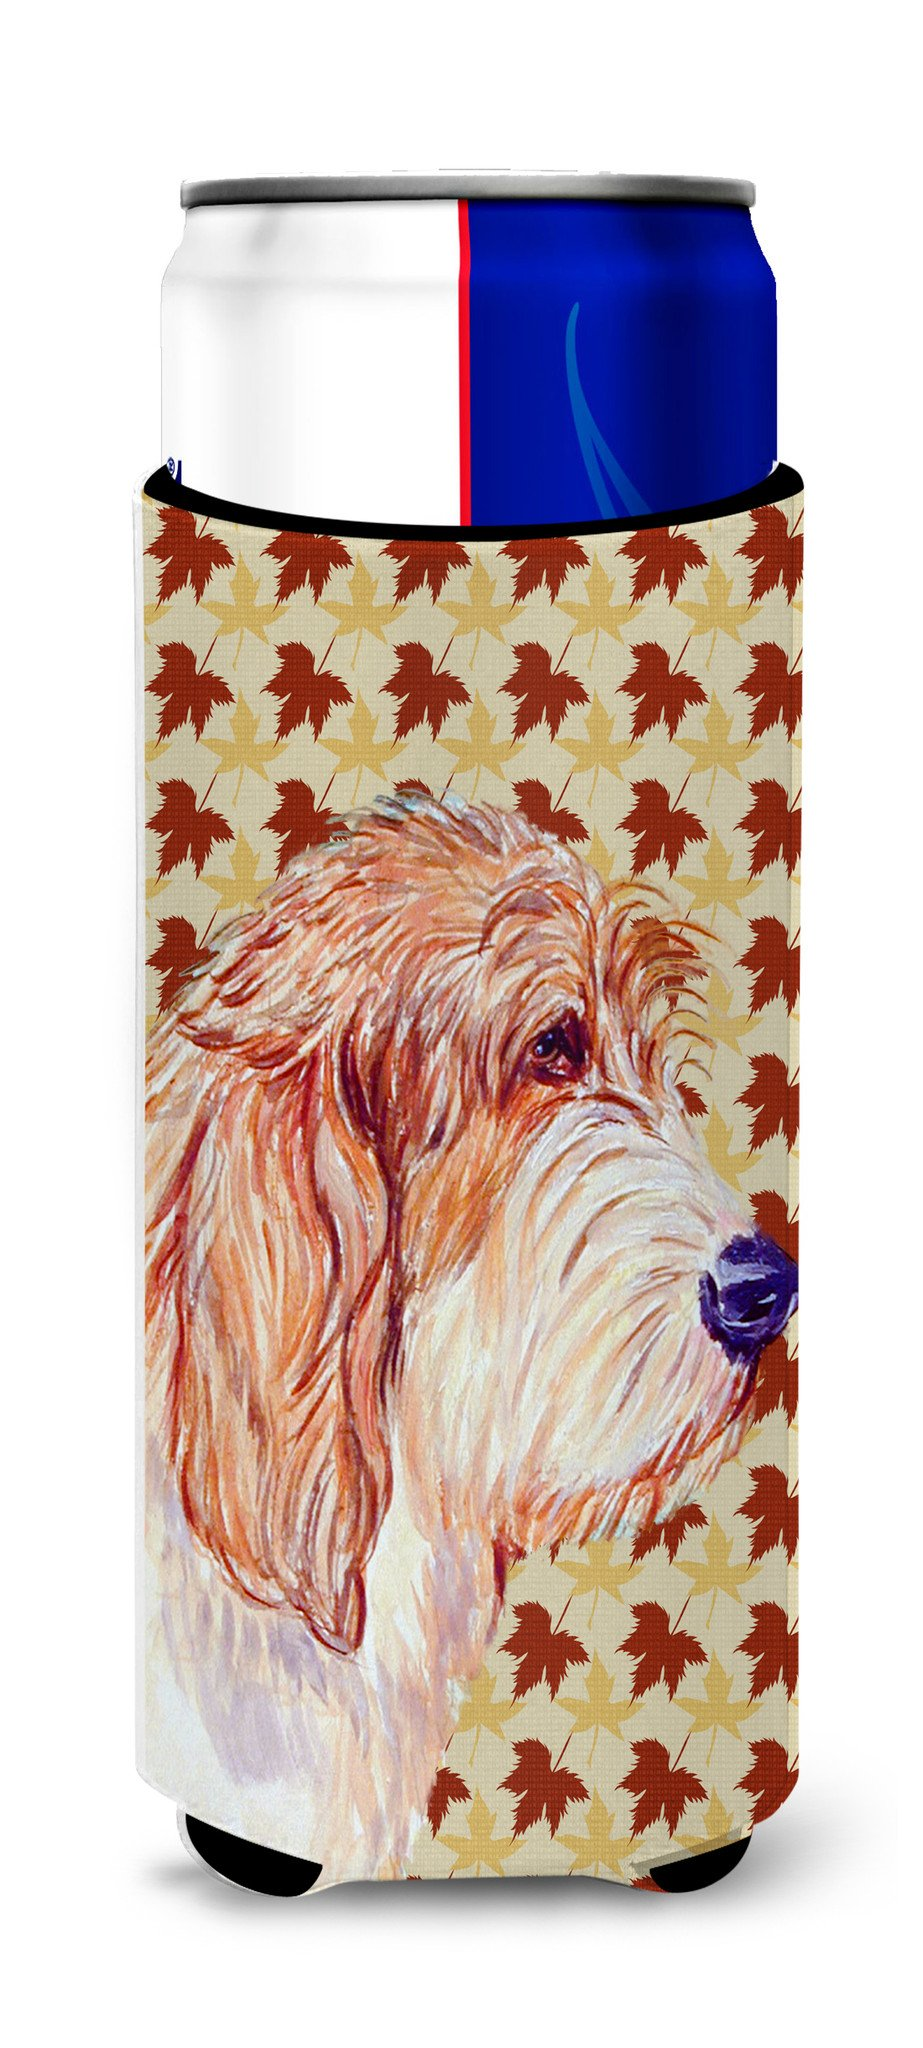 Petit Basset Griffon Vendeen Fall Leaves Portrait Ultra Beverage Insulators for slim cans LH9127MUK by Caroline's Treasures